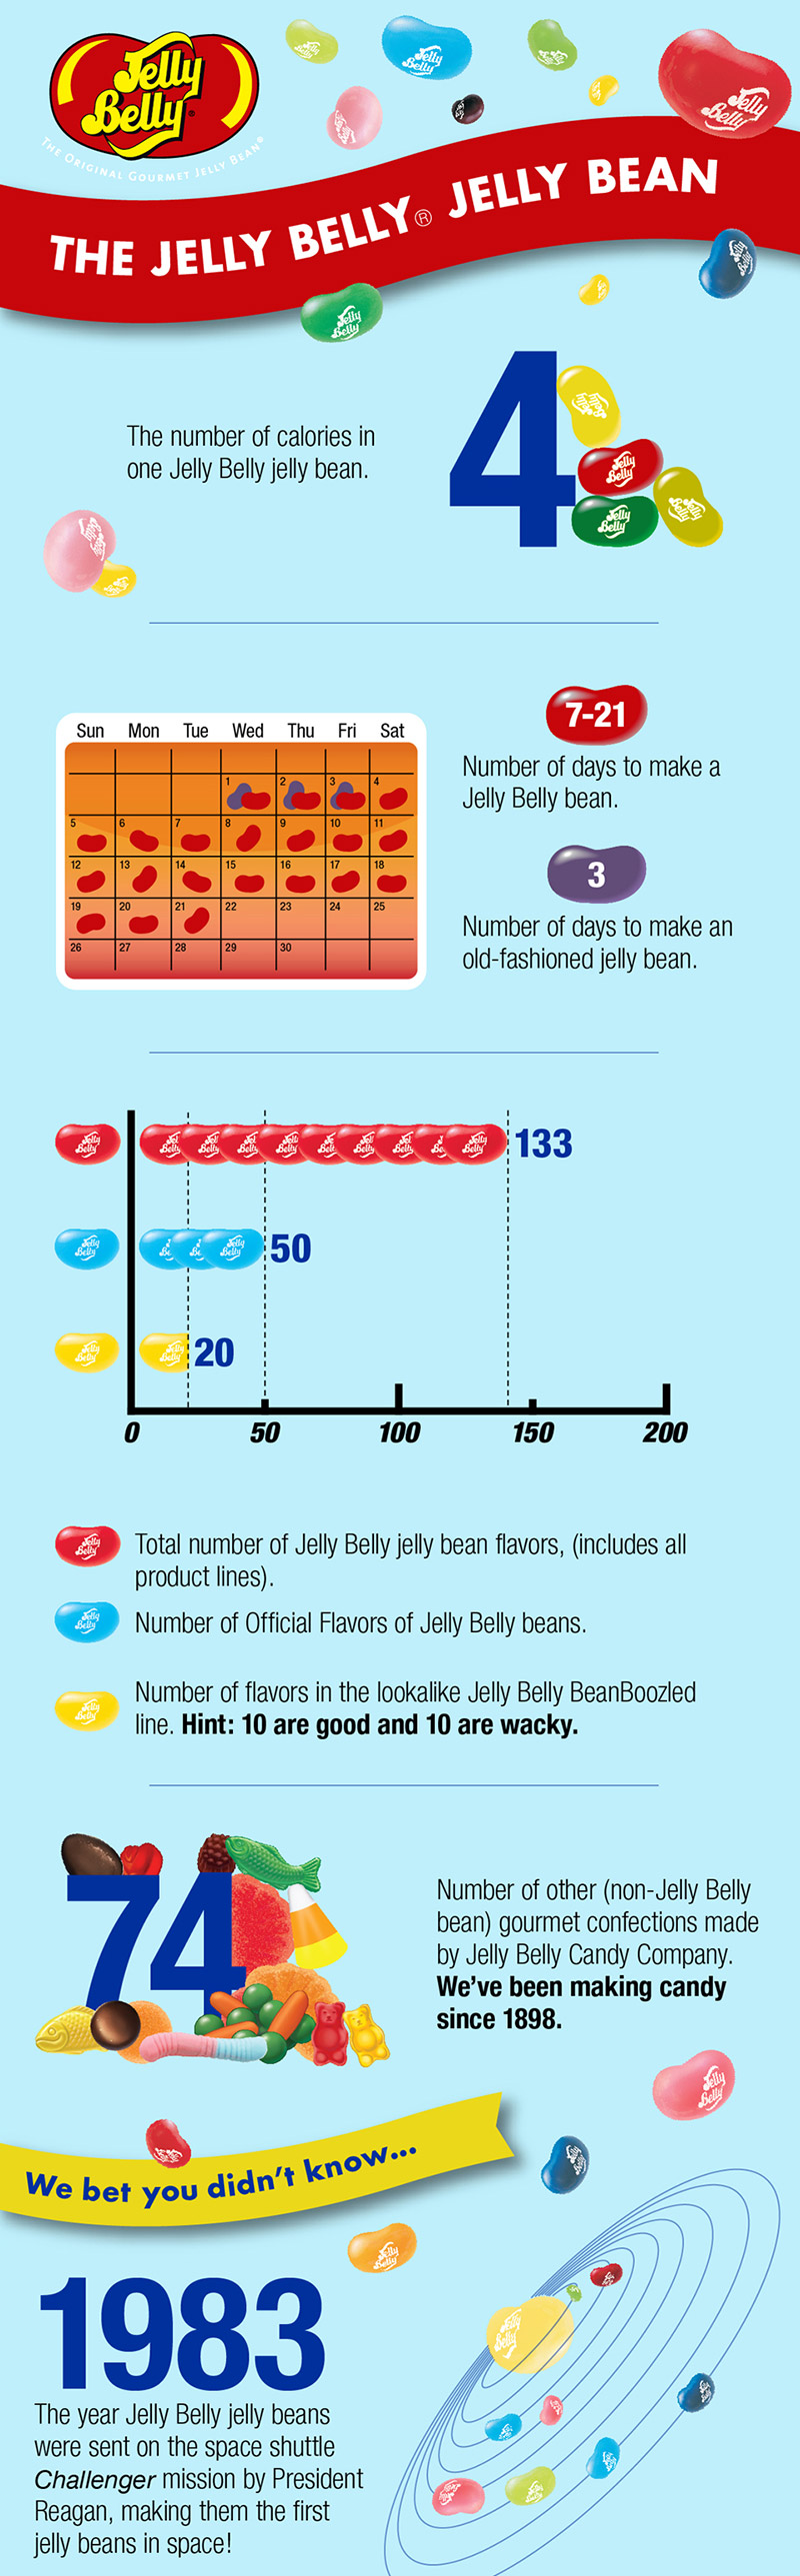 Jelly Bean Facts